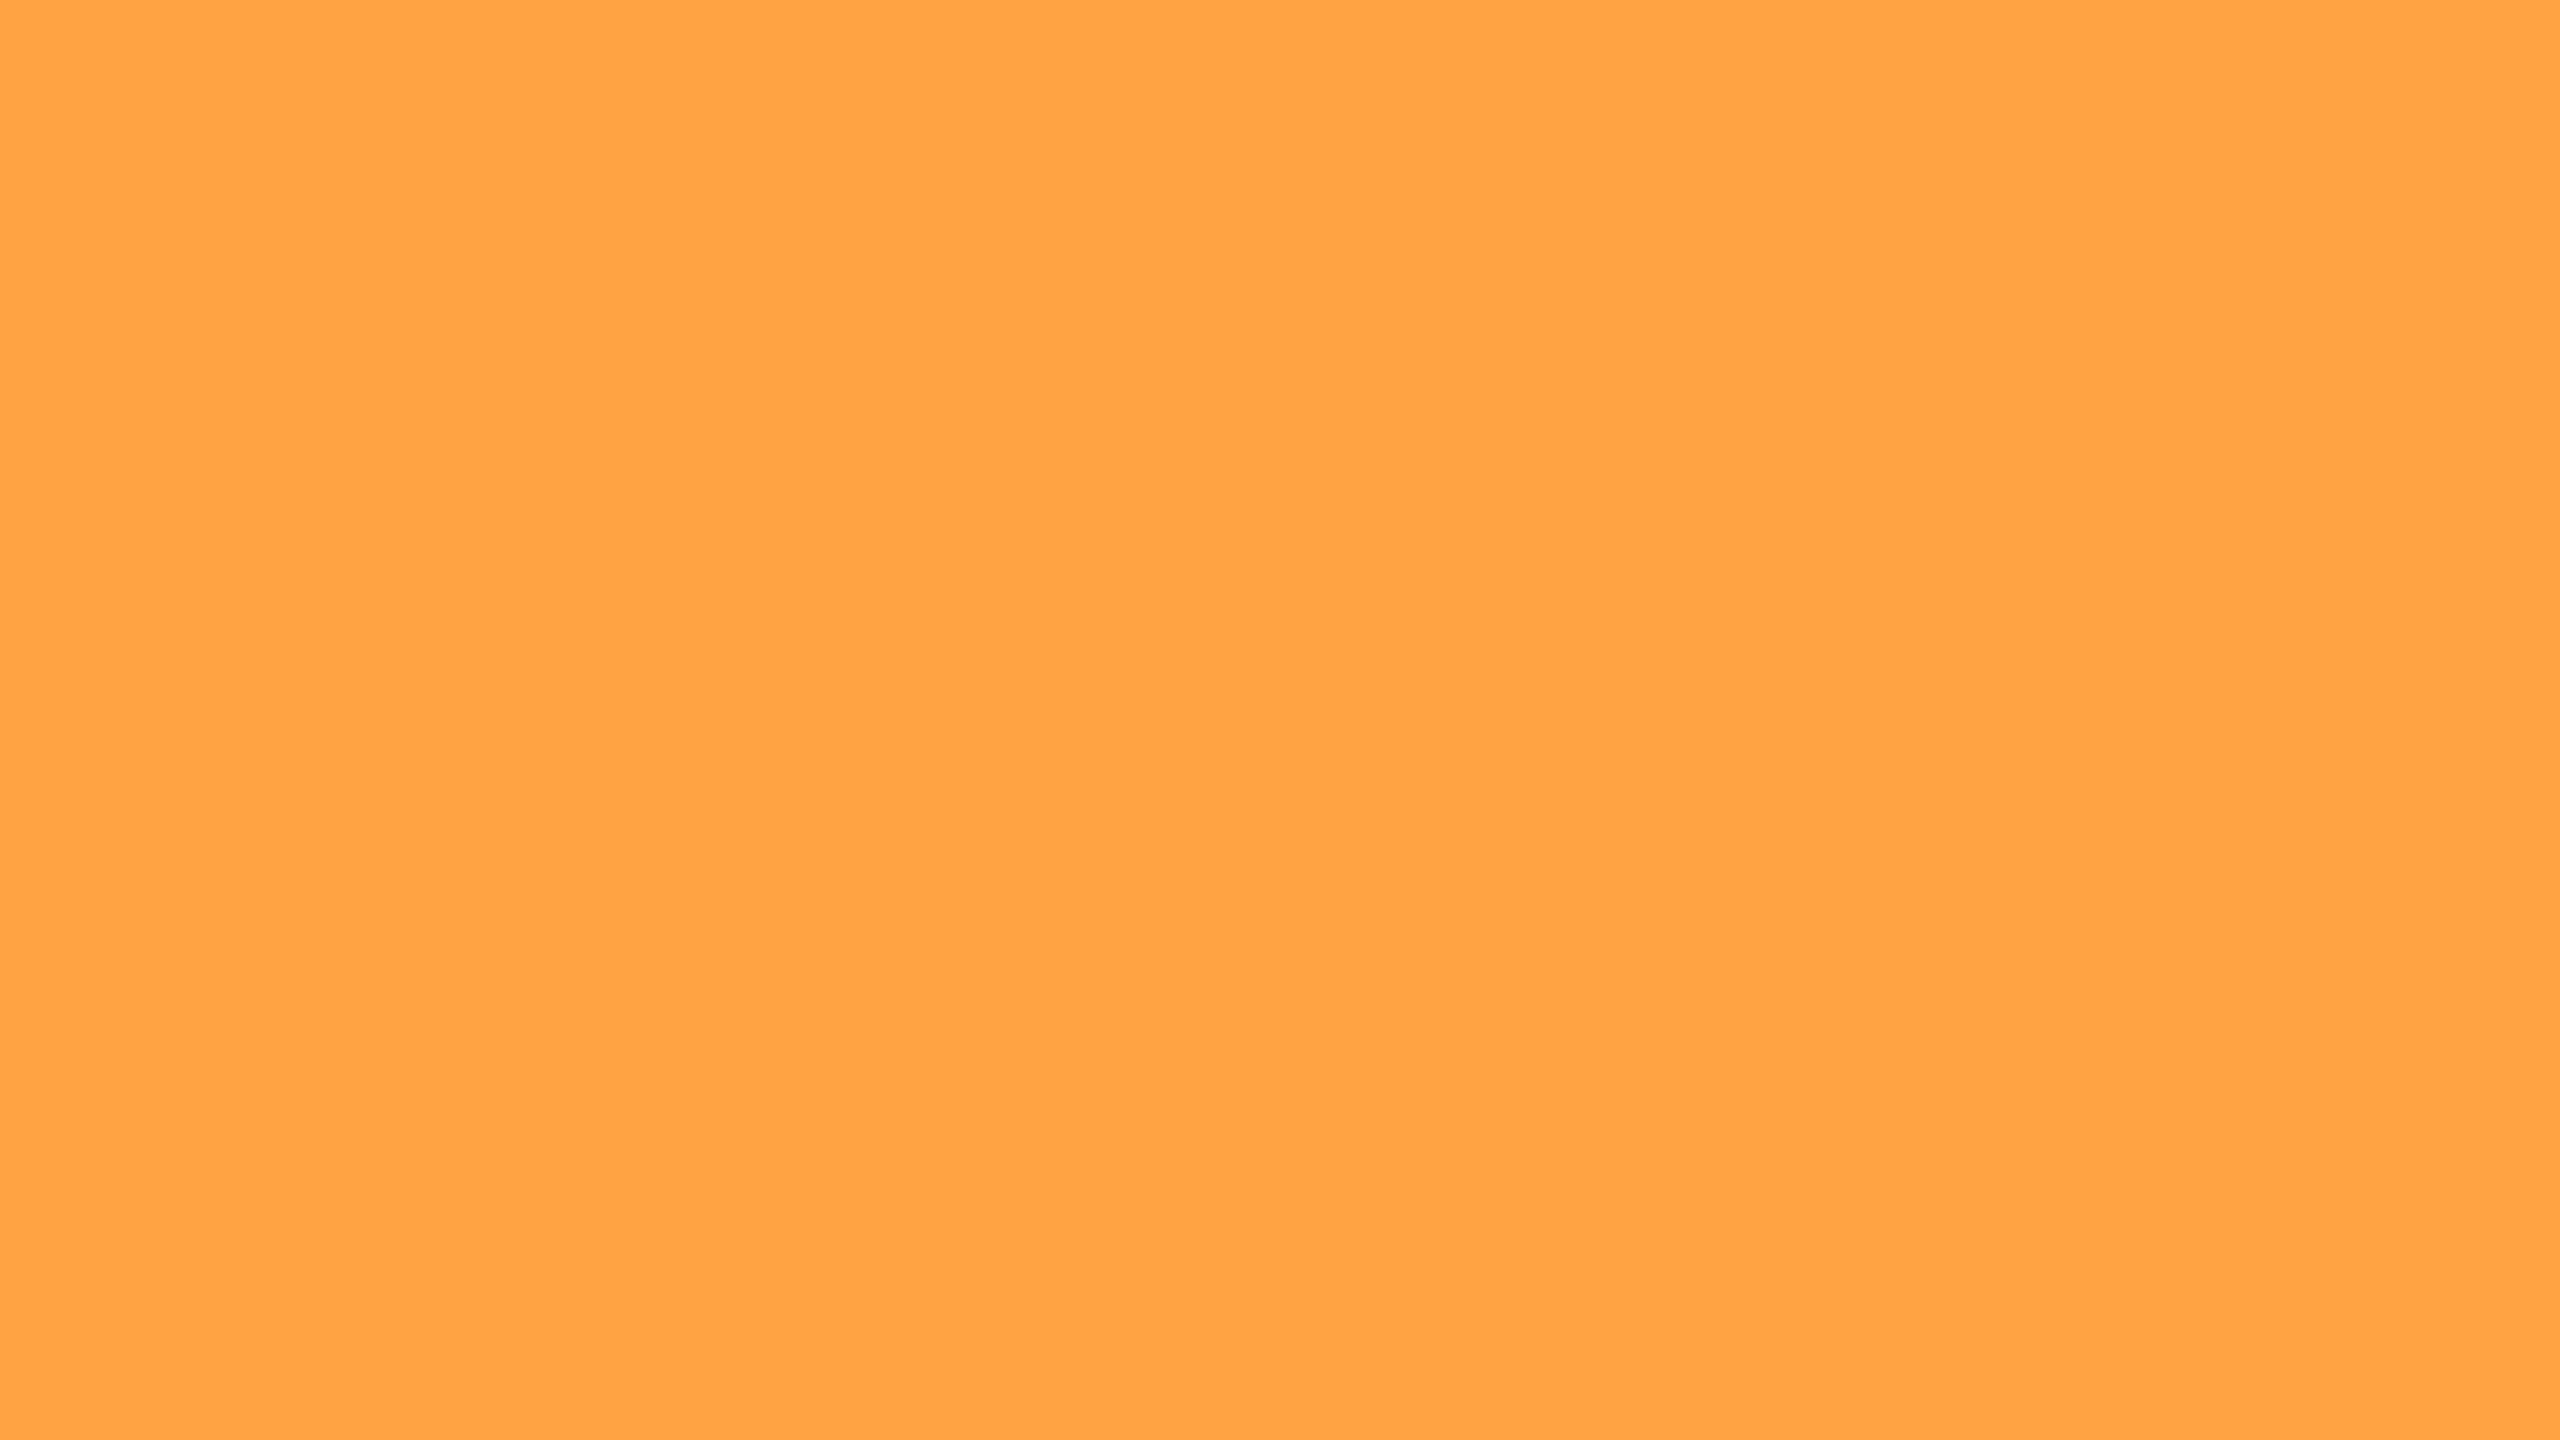 2560x1440 Neon Carrot Solid Color Background